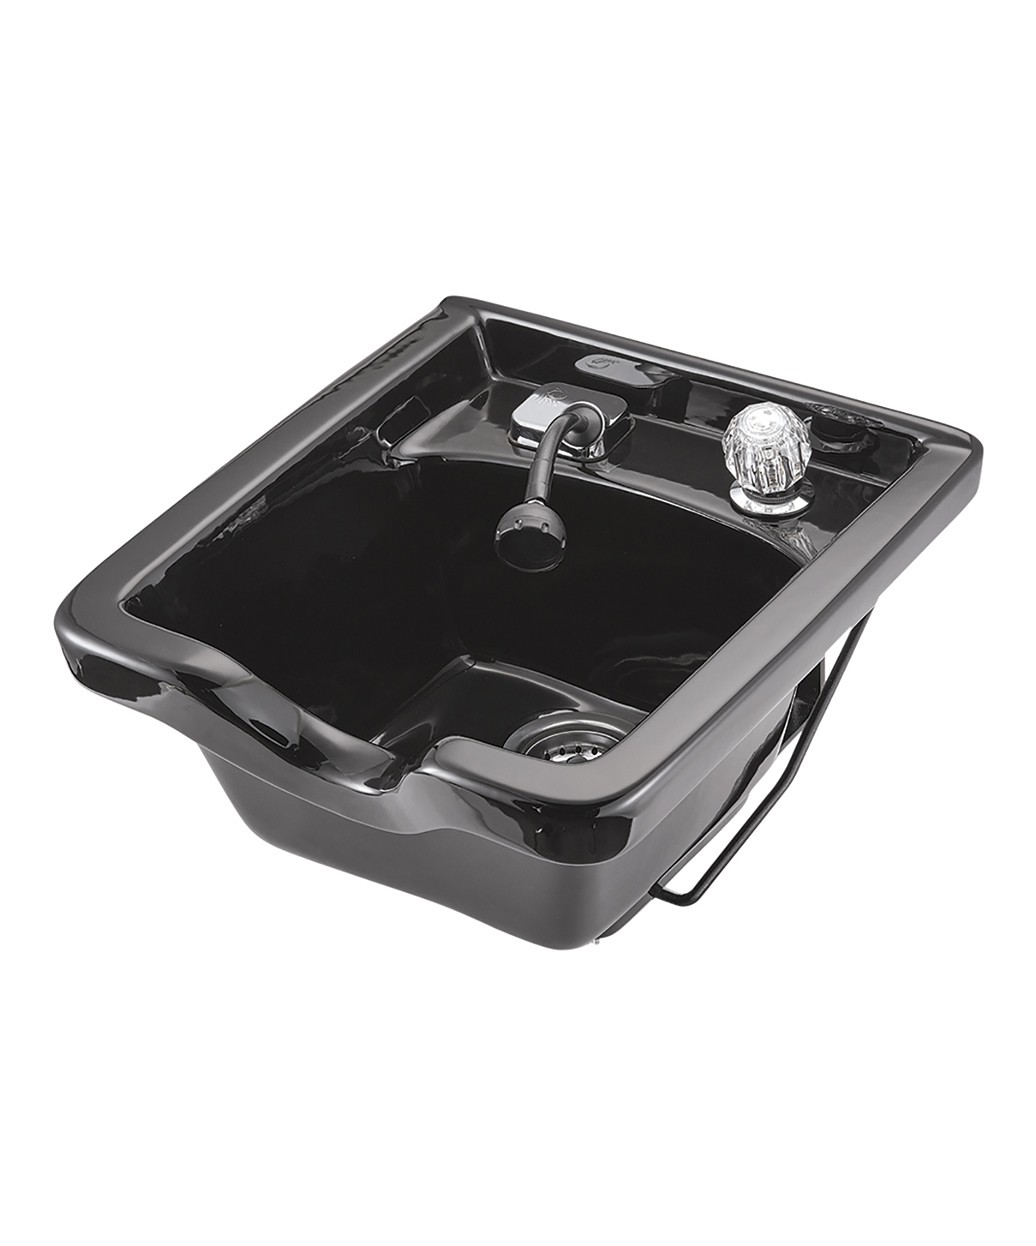 Pibbs 5300 Porcelain Marble Shampoo Bowl With Accessories